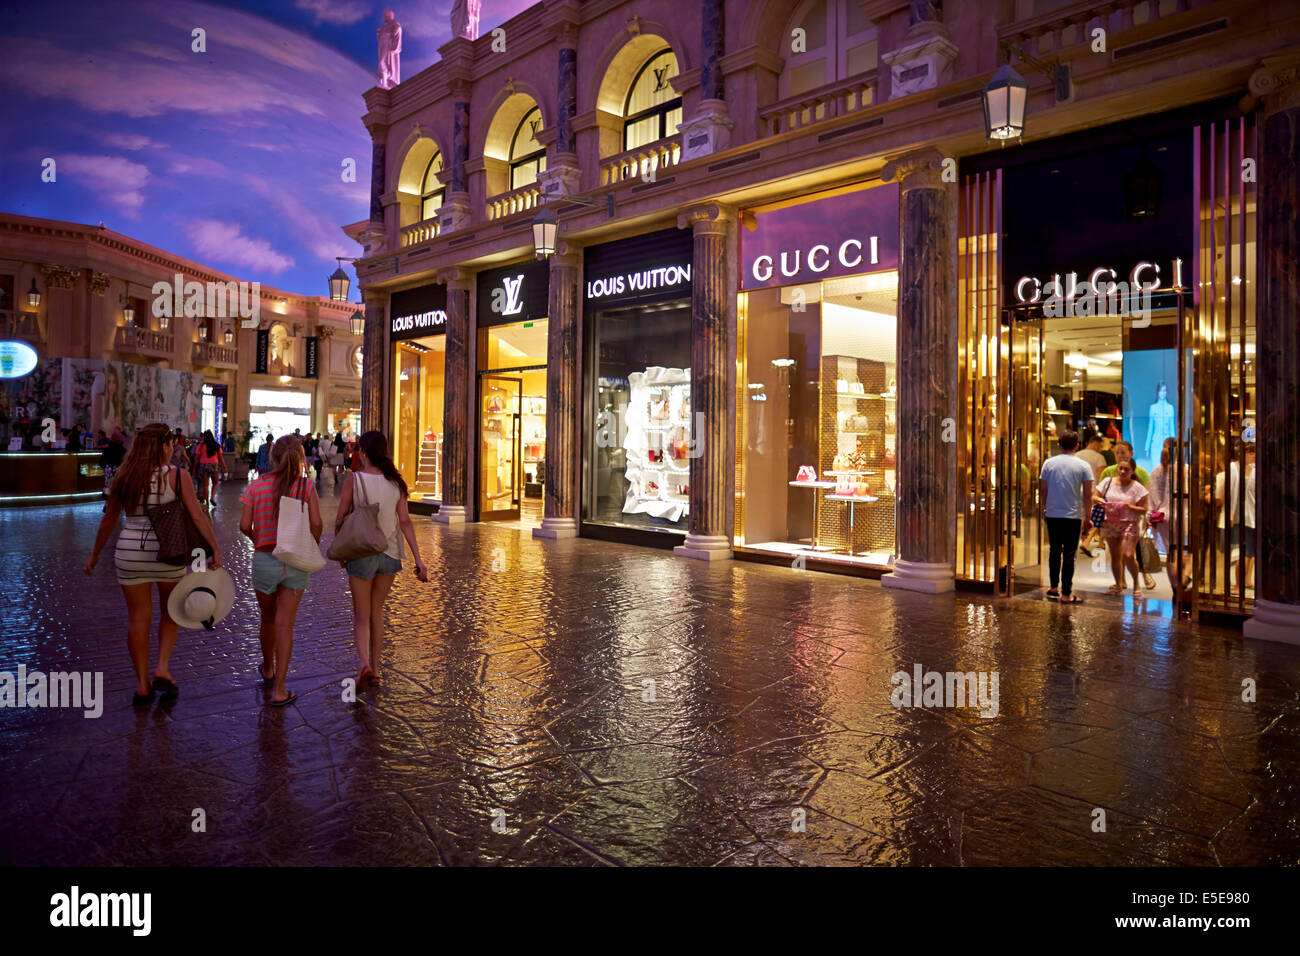 the forum shops at caesars a shopping mall connected to caesars stock photo 72229360 alamy. Black Bedroom Furniture Sets. Home Design Ideas